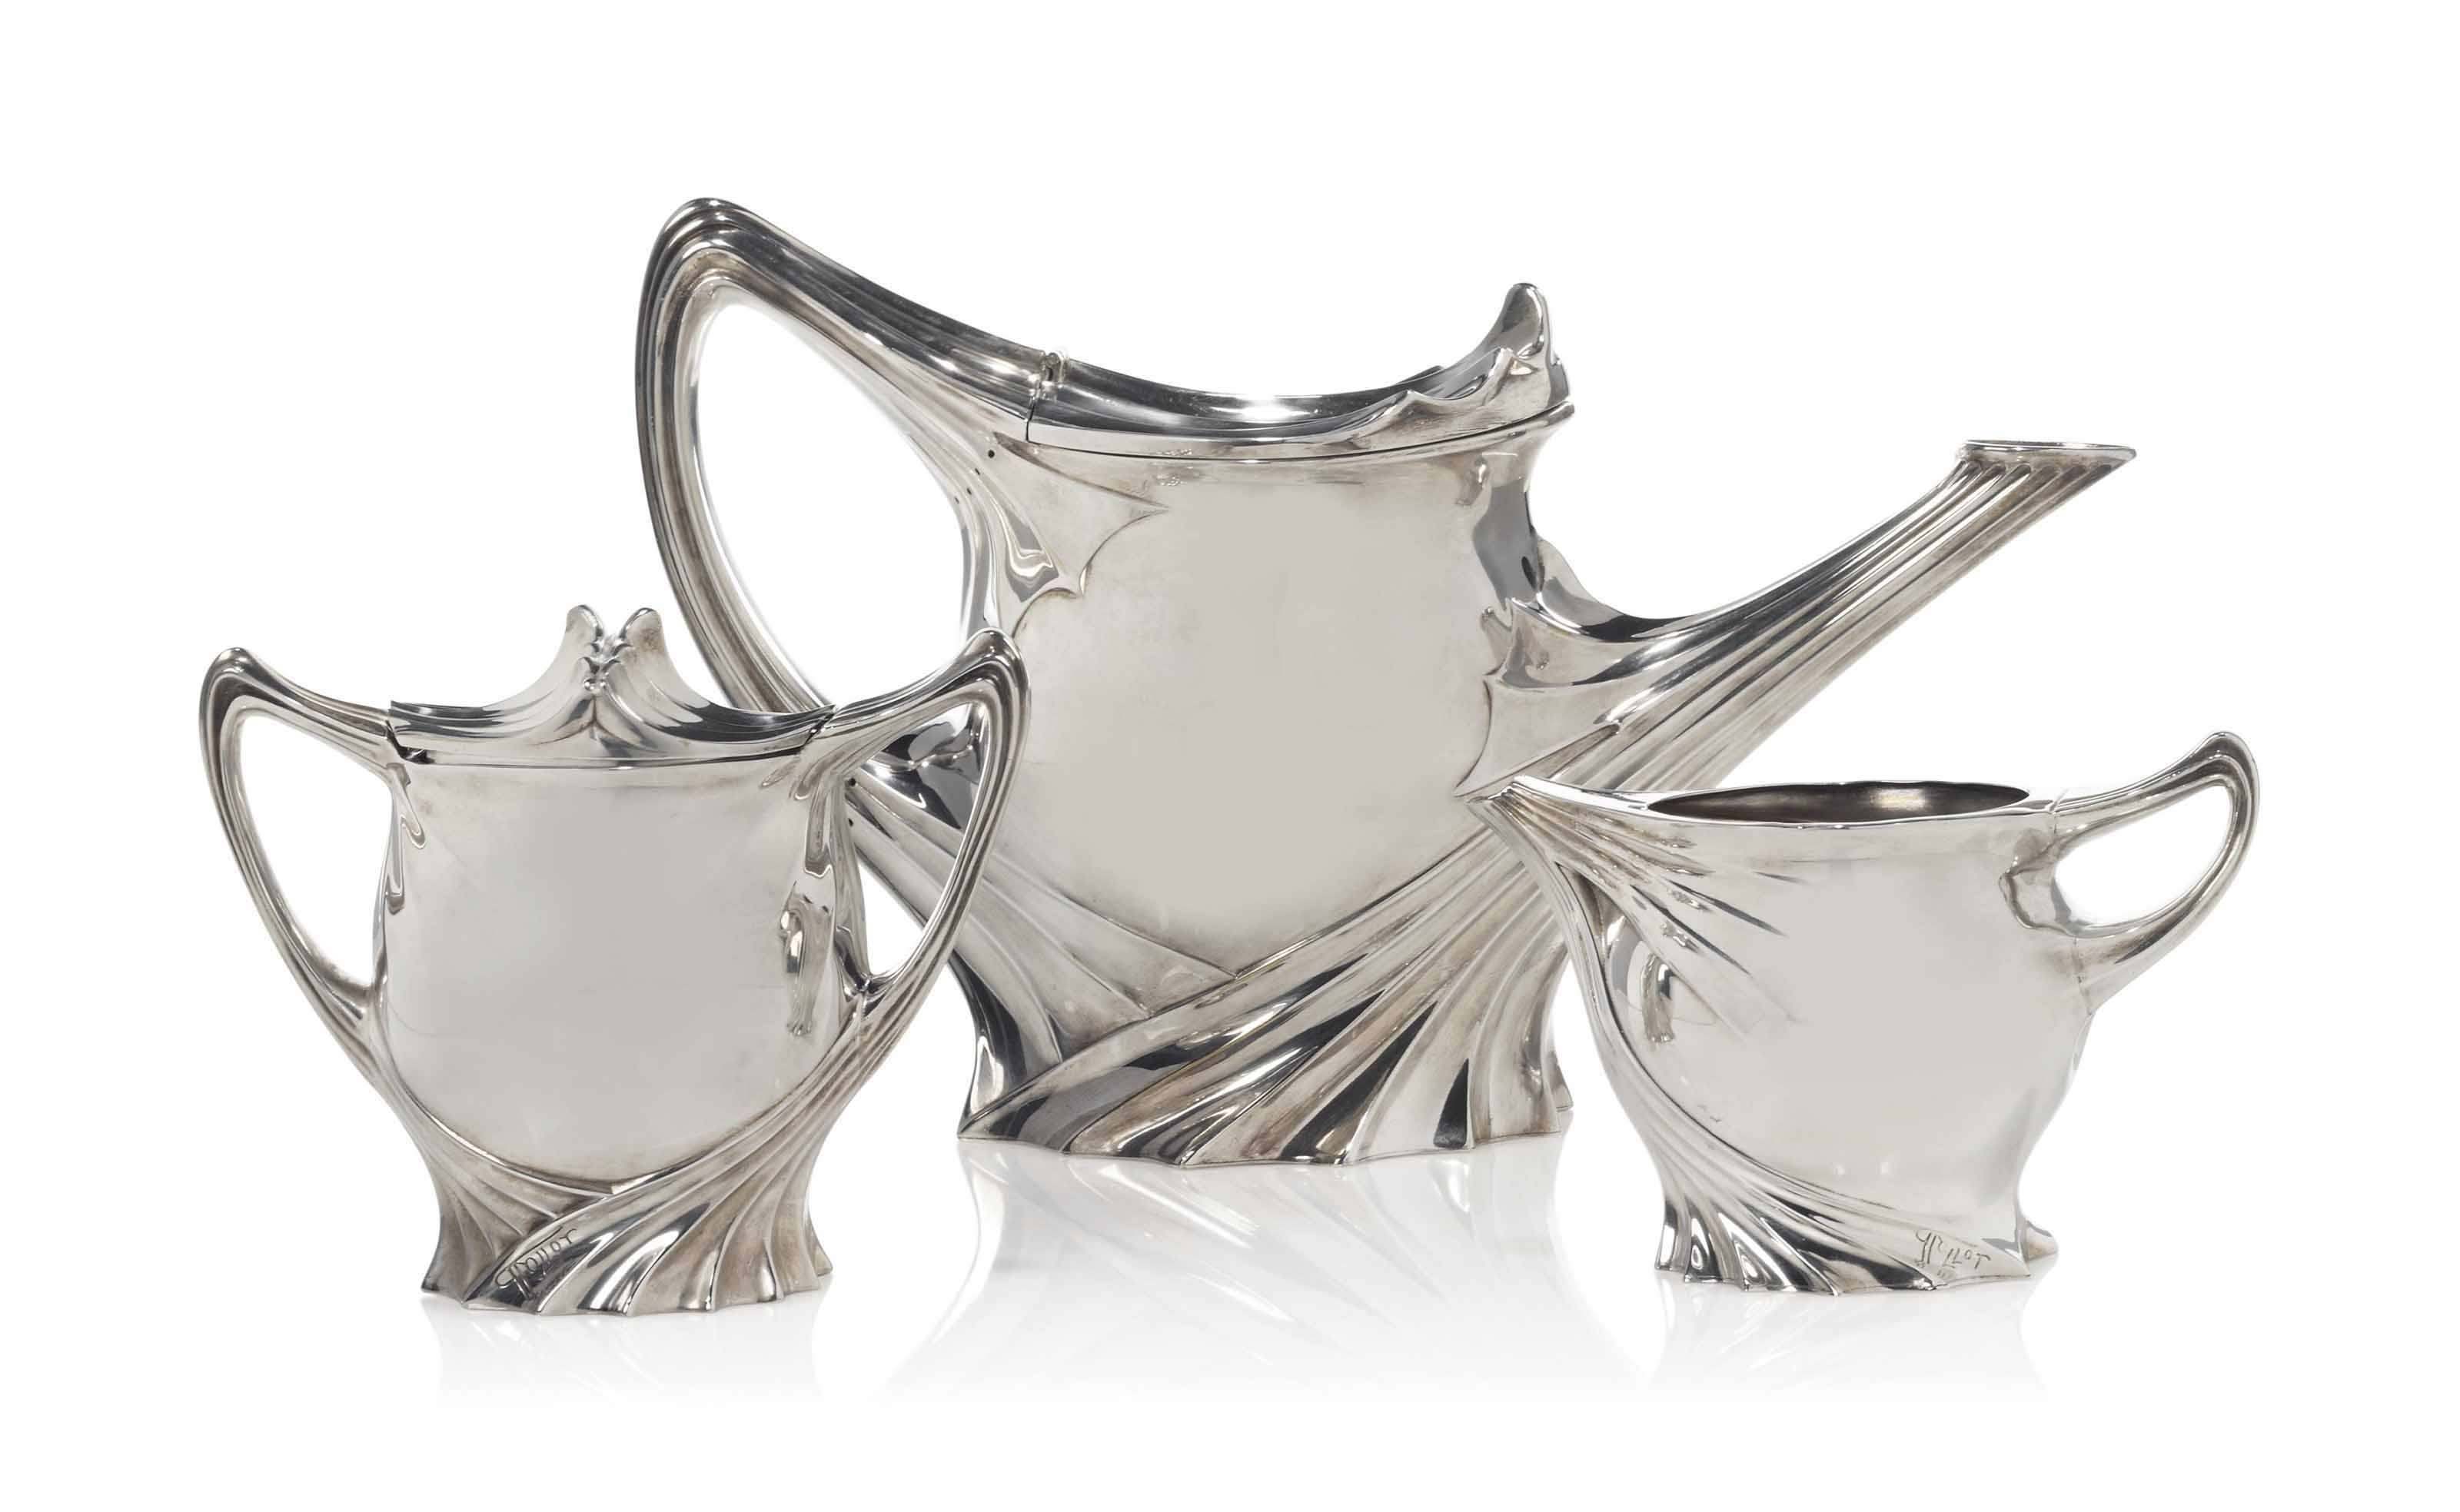 A PAUL FOLLOT (1877-1941) ART NOUVEAU SILVER-PLATED TEA SET